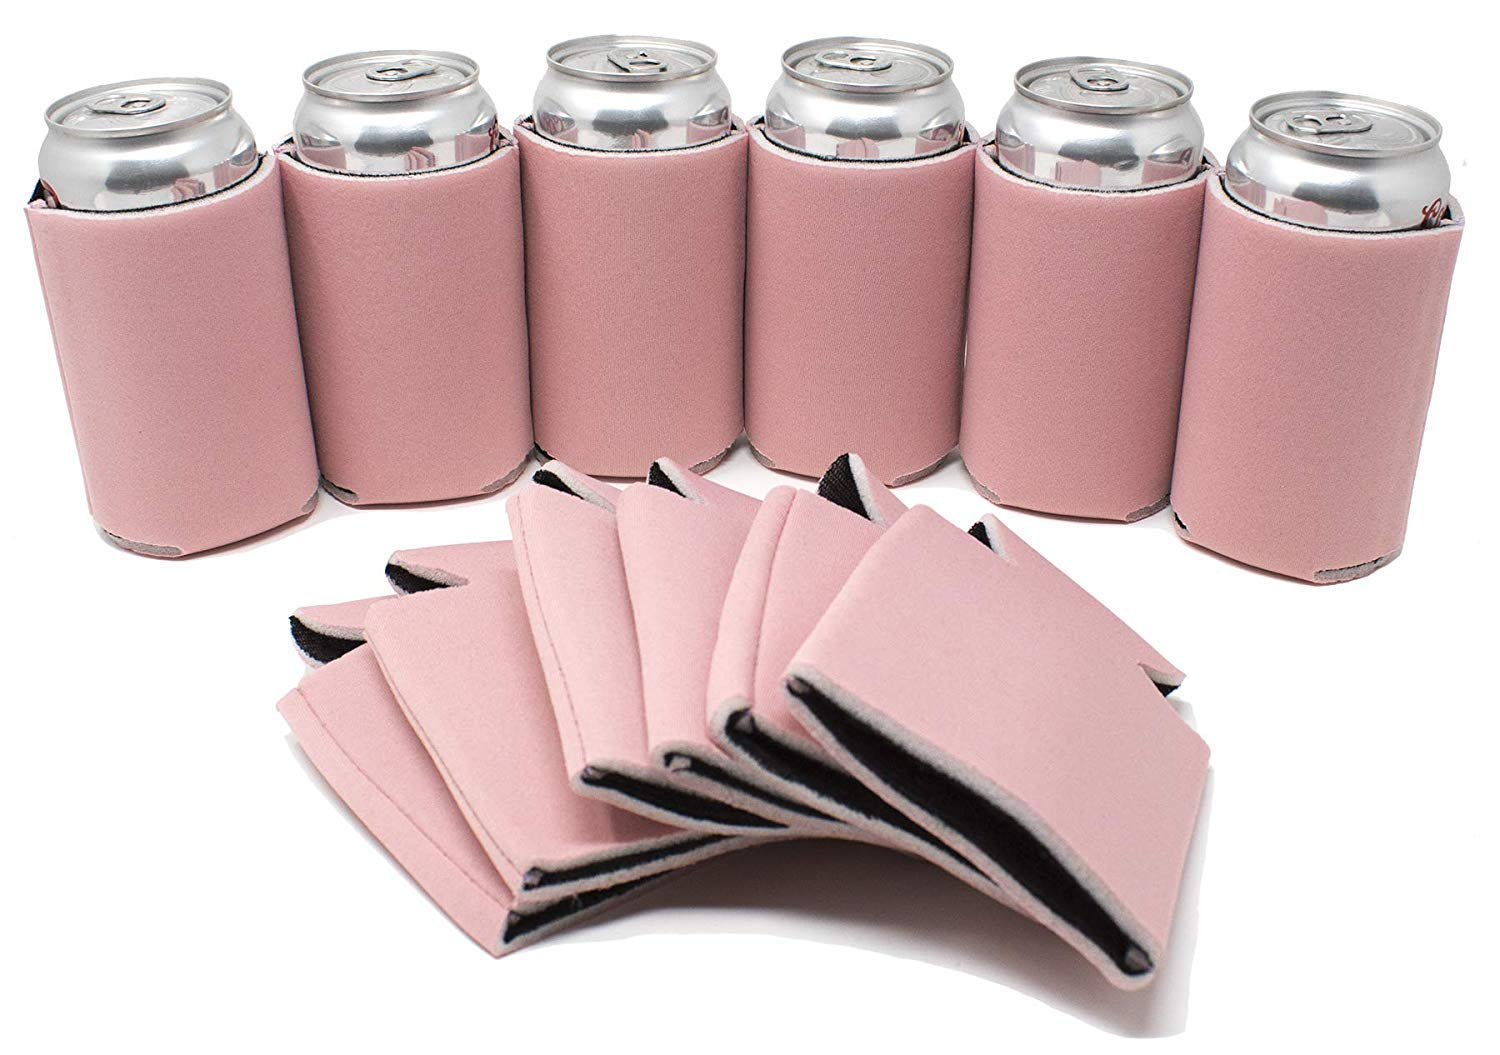 TahoeBay 25 Blank Beer Can Coolers, Plain Bulk Collapsible Soda Cover Coolies, DIY Personalized Sublimation Sleeves for Weddings, Bachelorette Parties, Funny HTV Party Favors (Blush, 25)